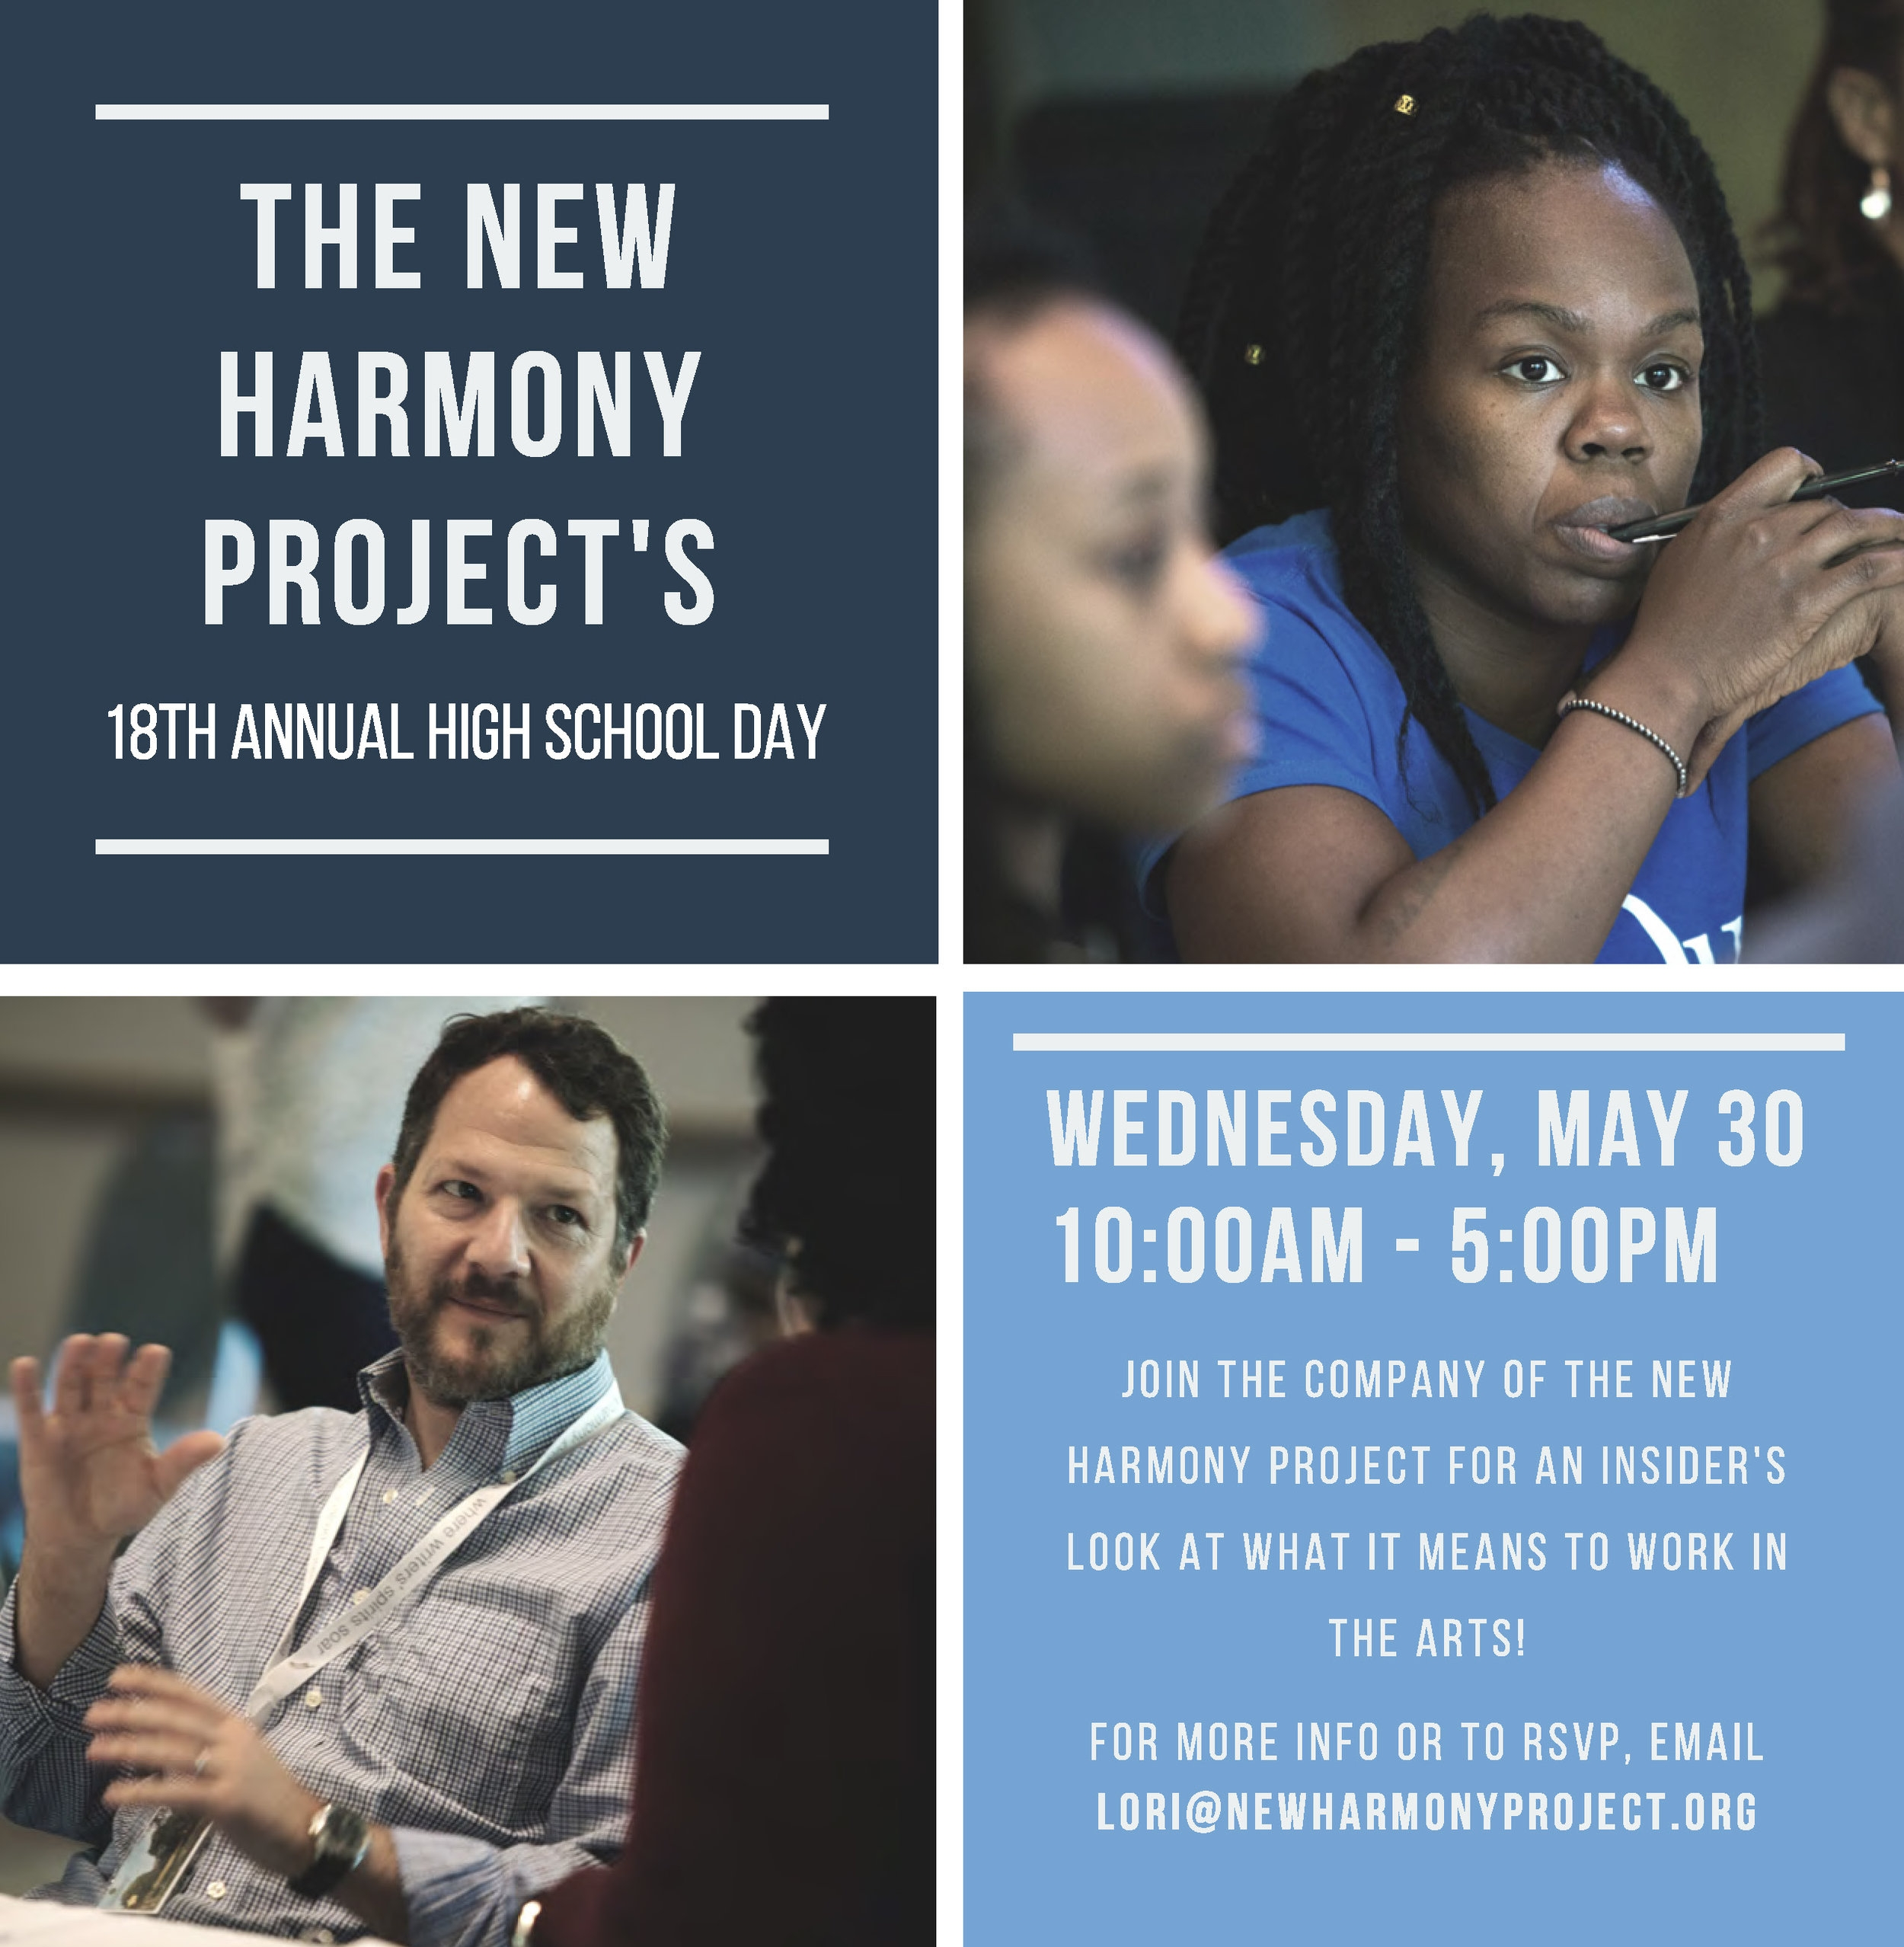 High School Outreach Day 2018 - The New Harmony Project.jpg